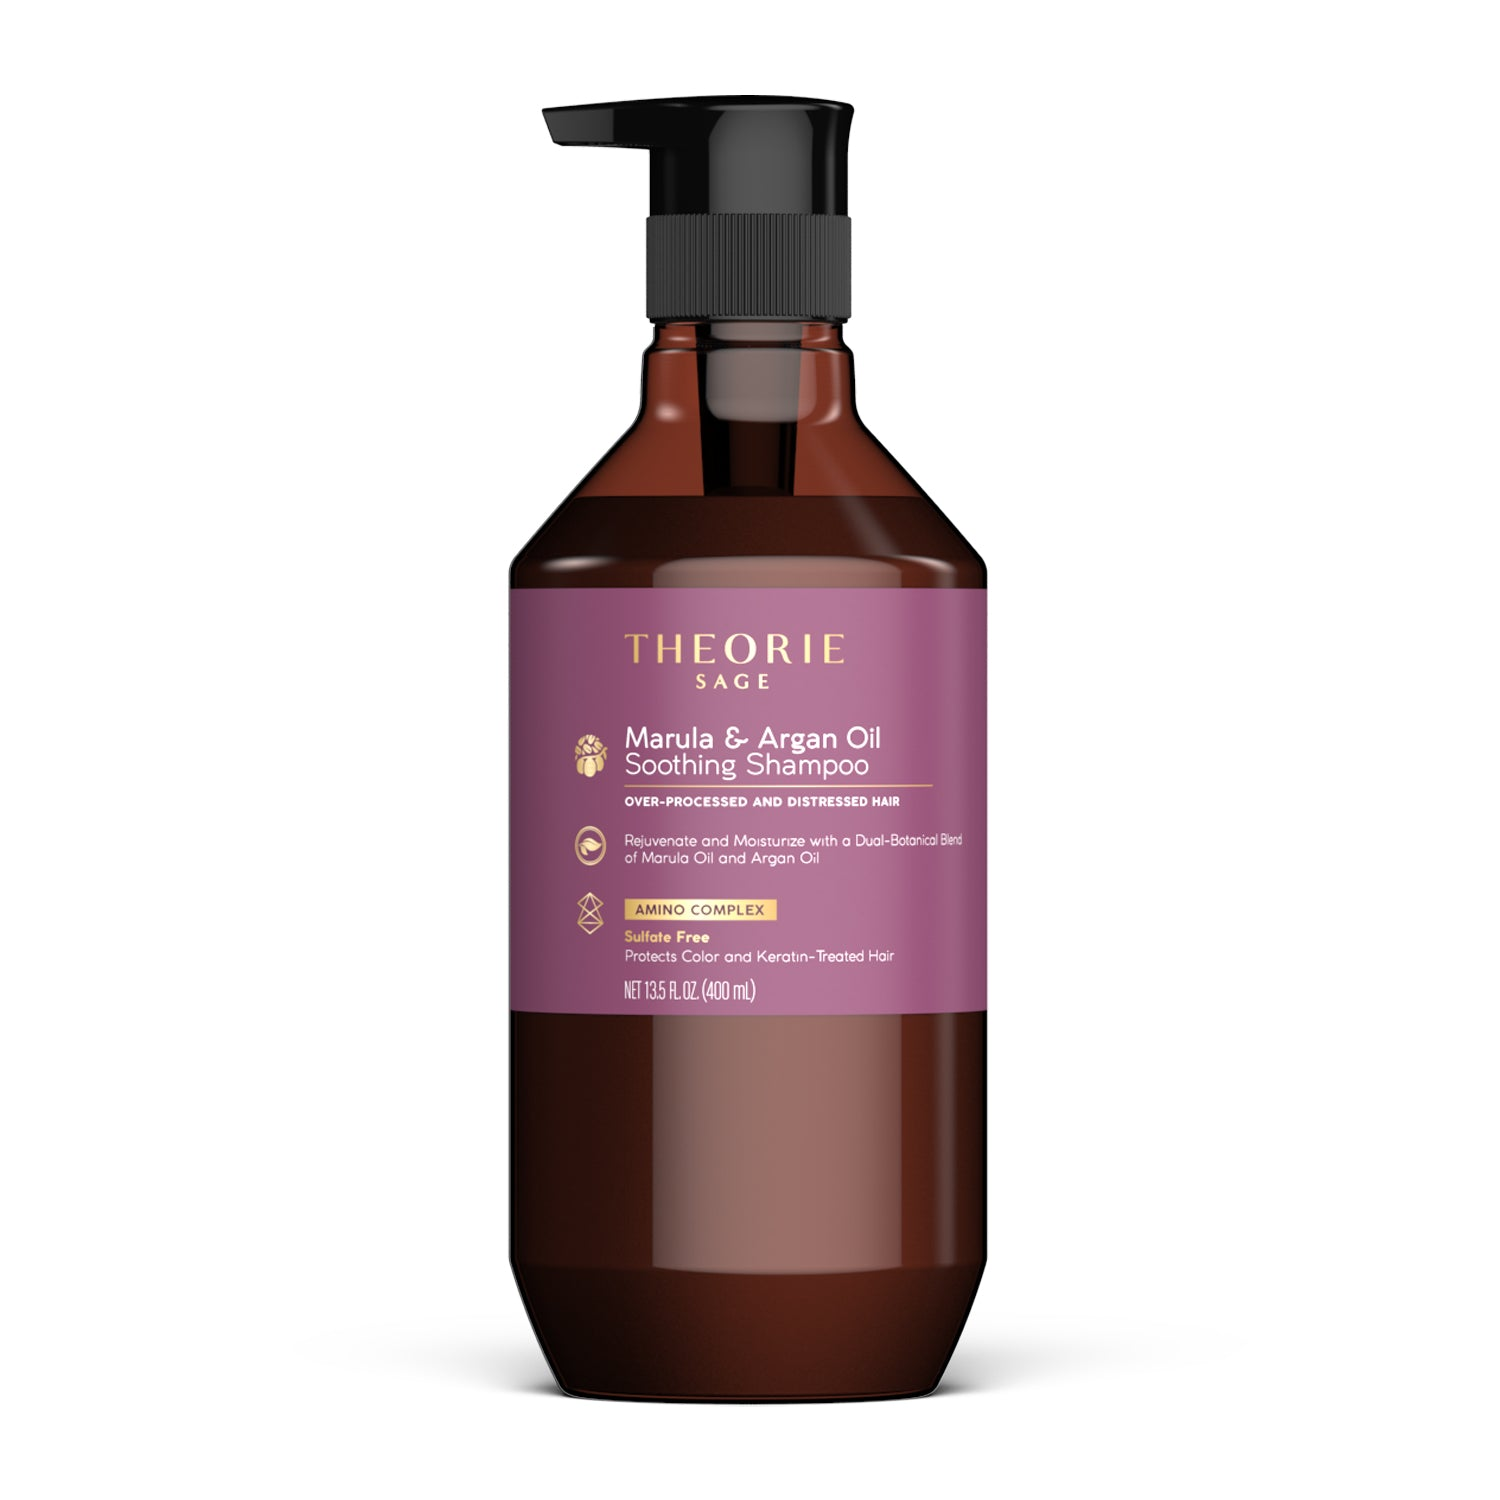 Theorie: Sage -  Marula & Argan Oil Soothing Shampoo (sulfate free)